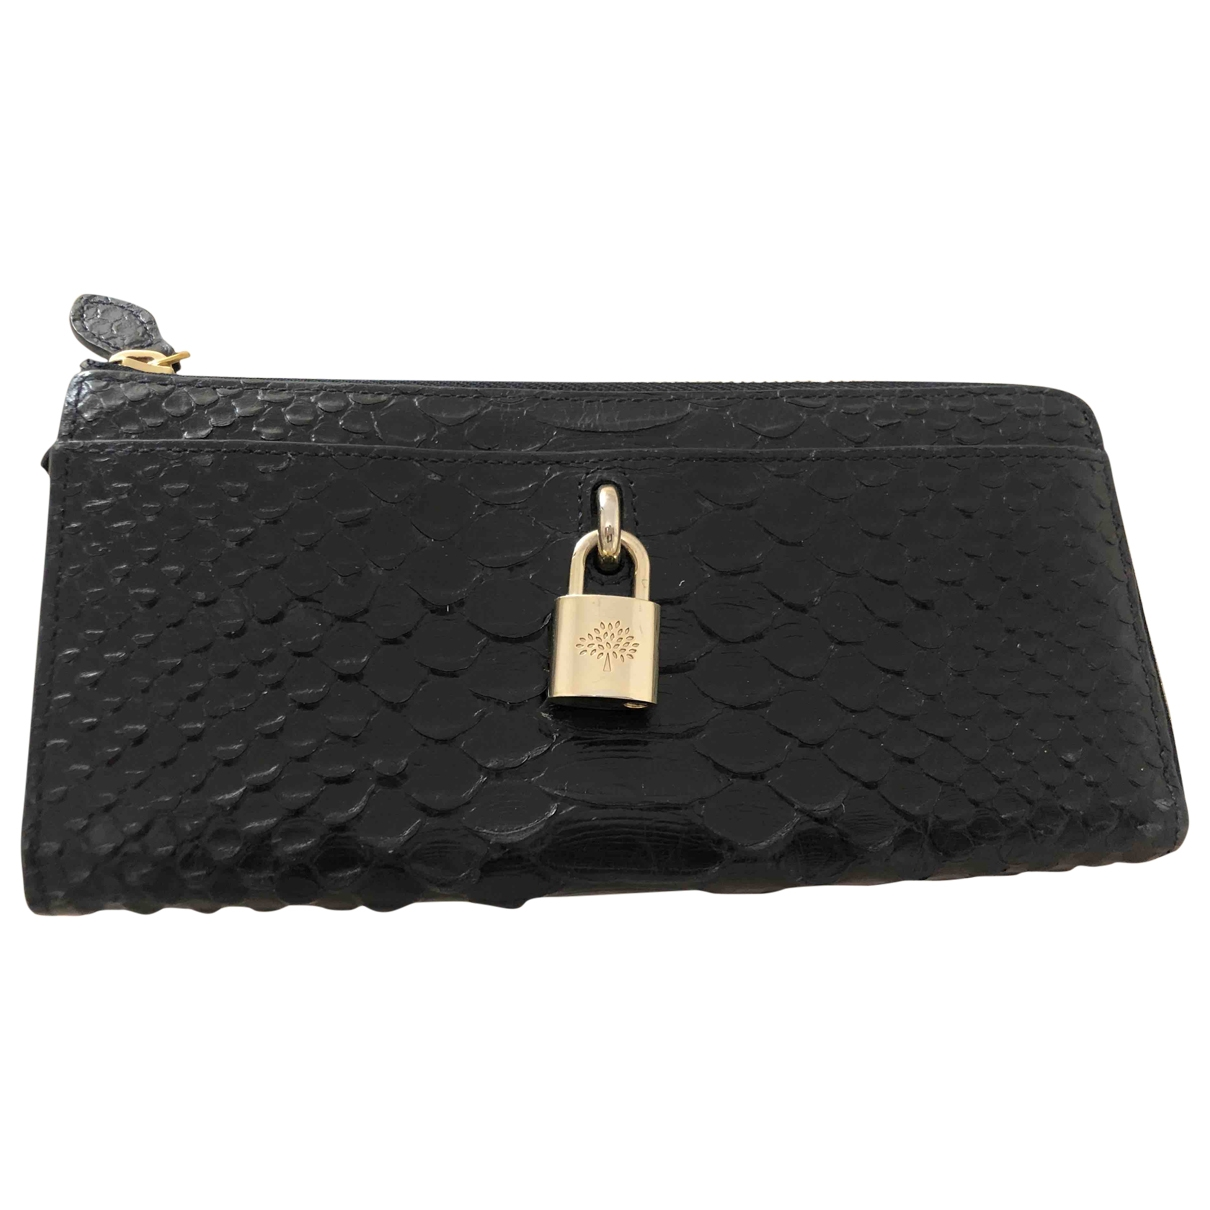 Cartera de Piton Mulberry